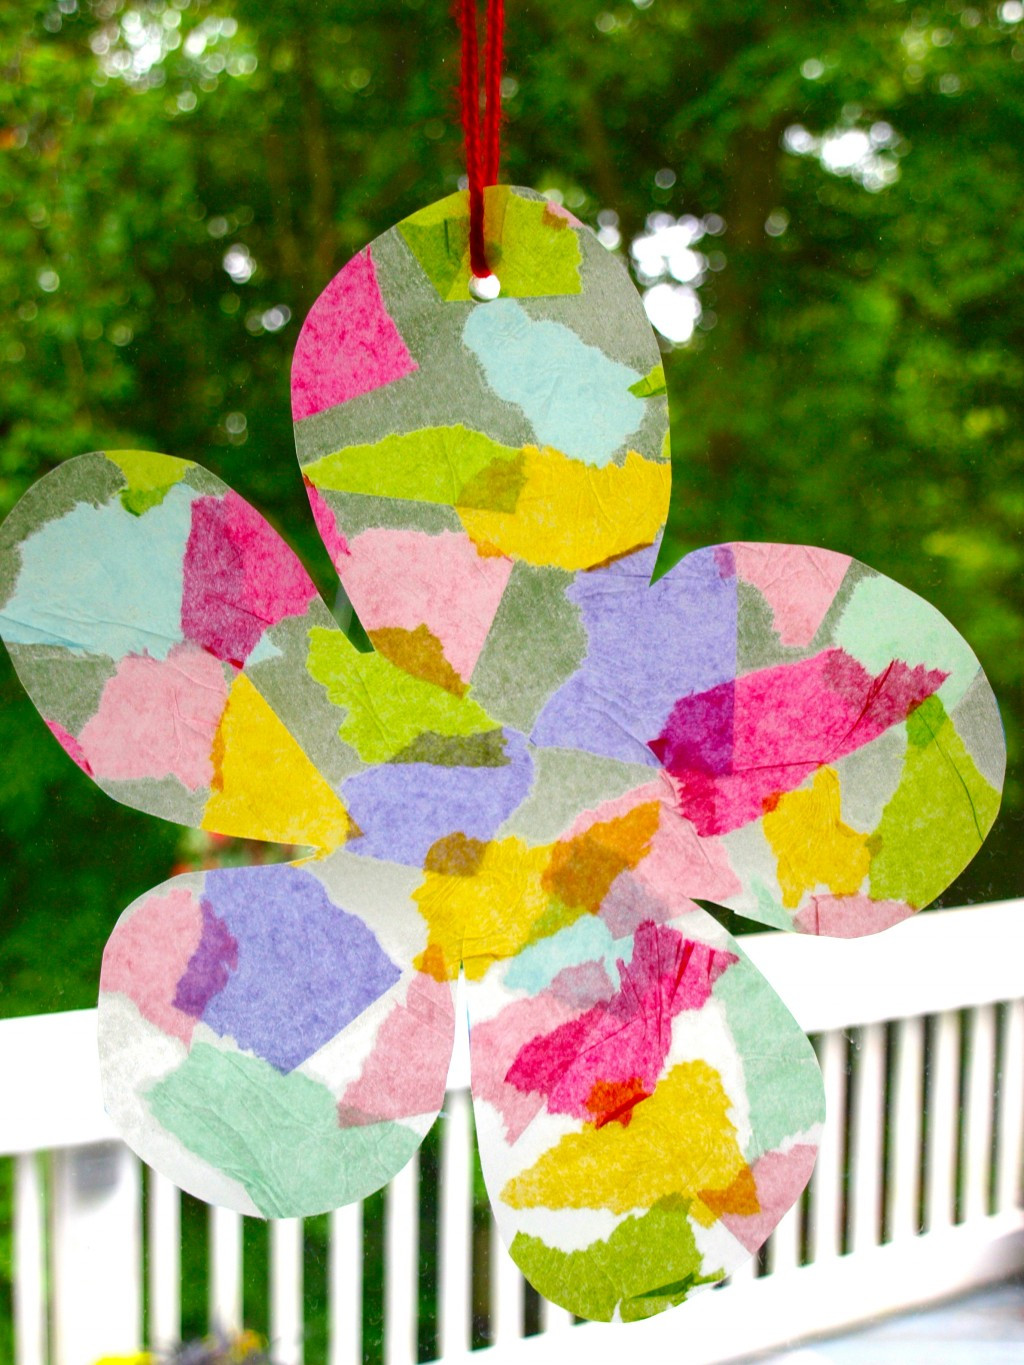 Best ideas about Craft Projects For Toddlers . Save or Pin Suncatcher Craft Project for Toddlers Now.